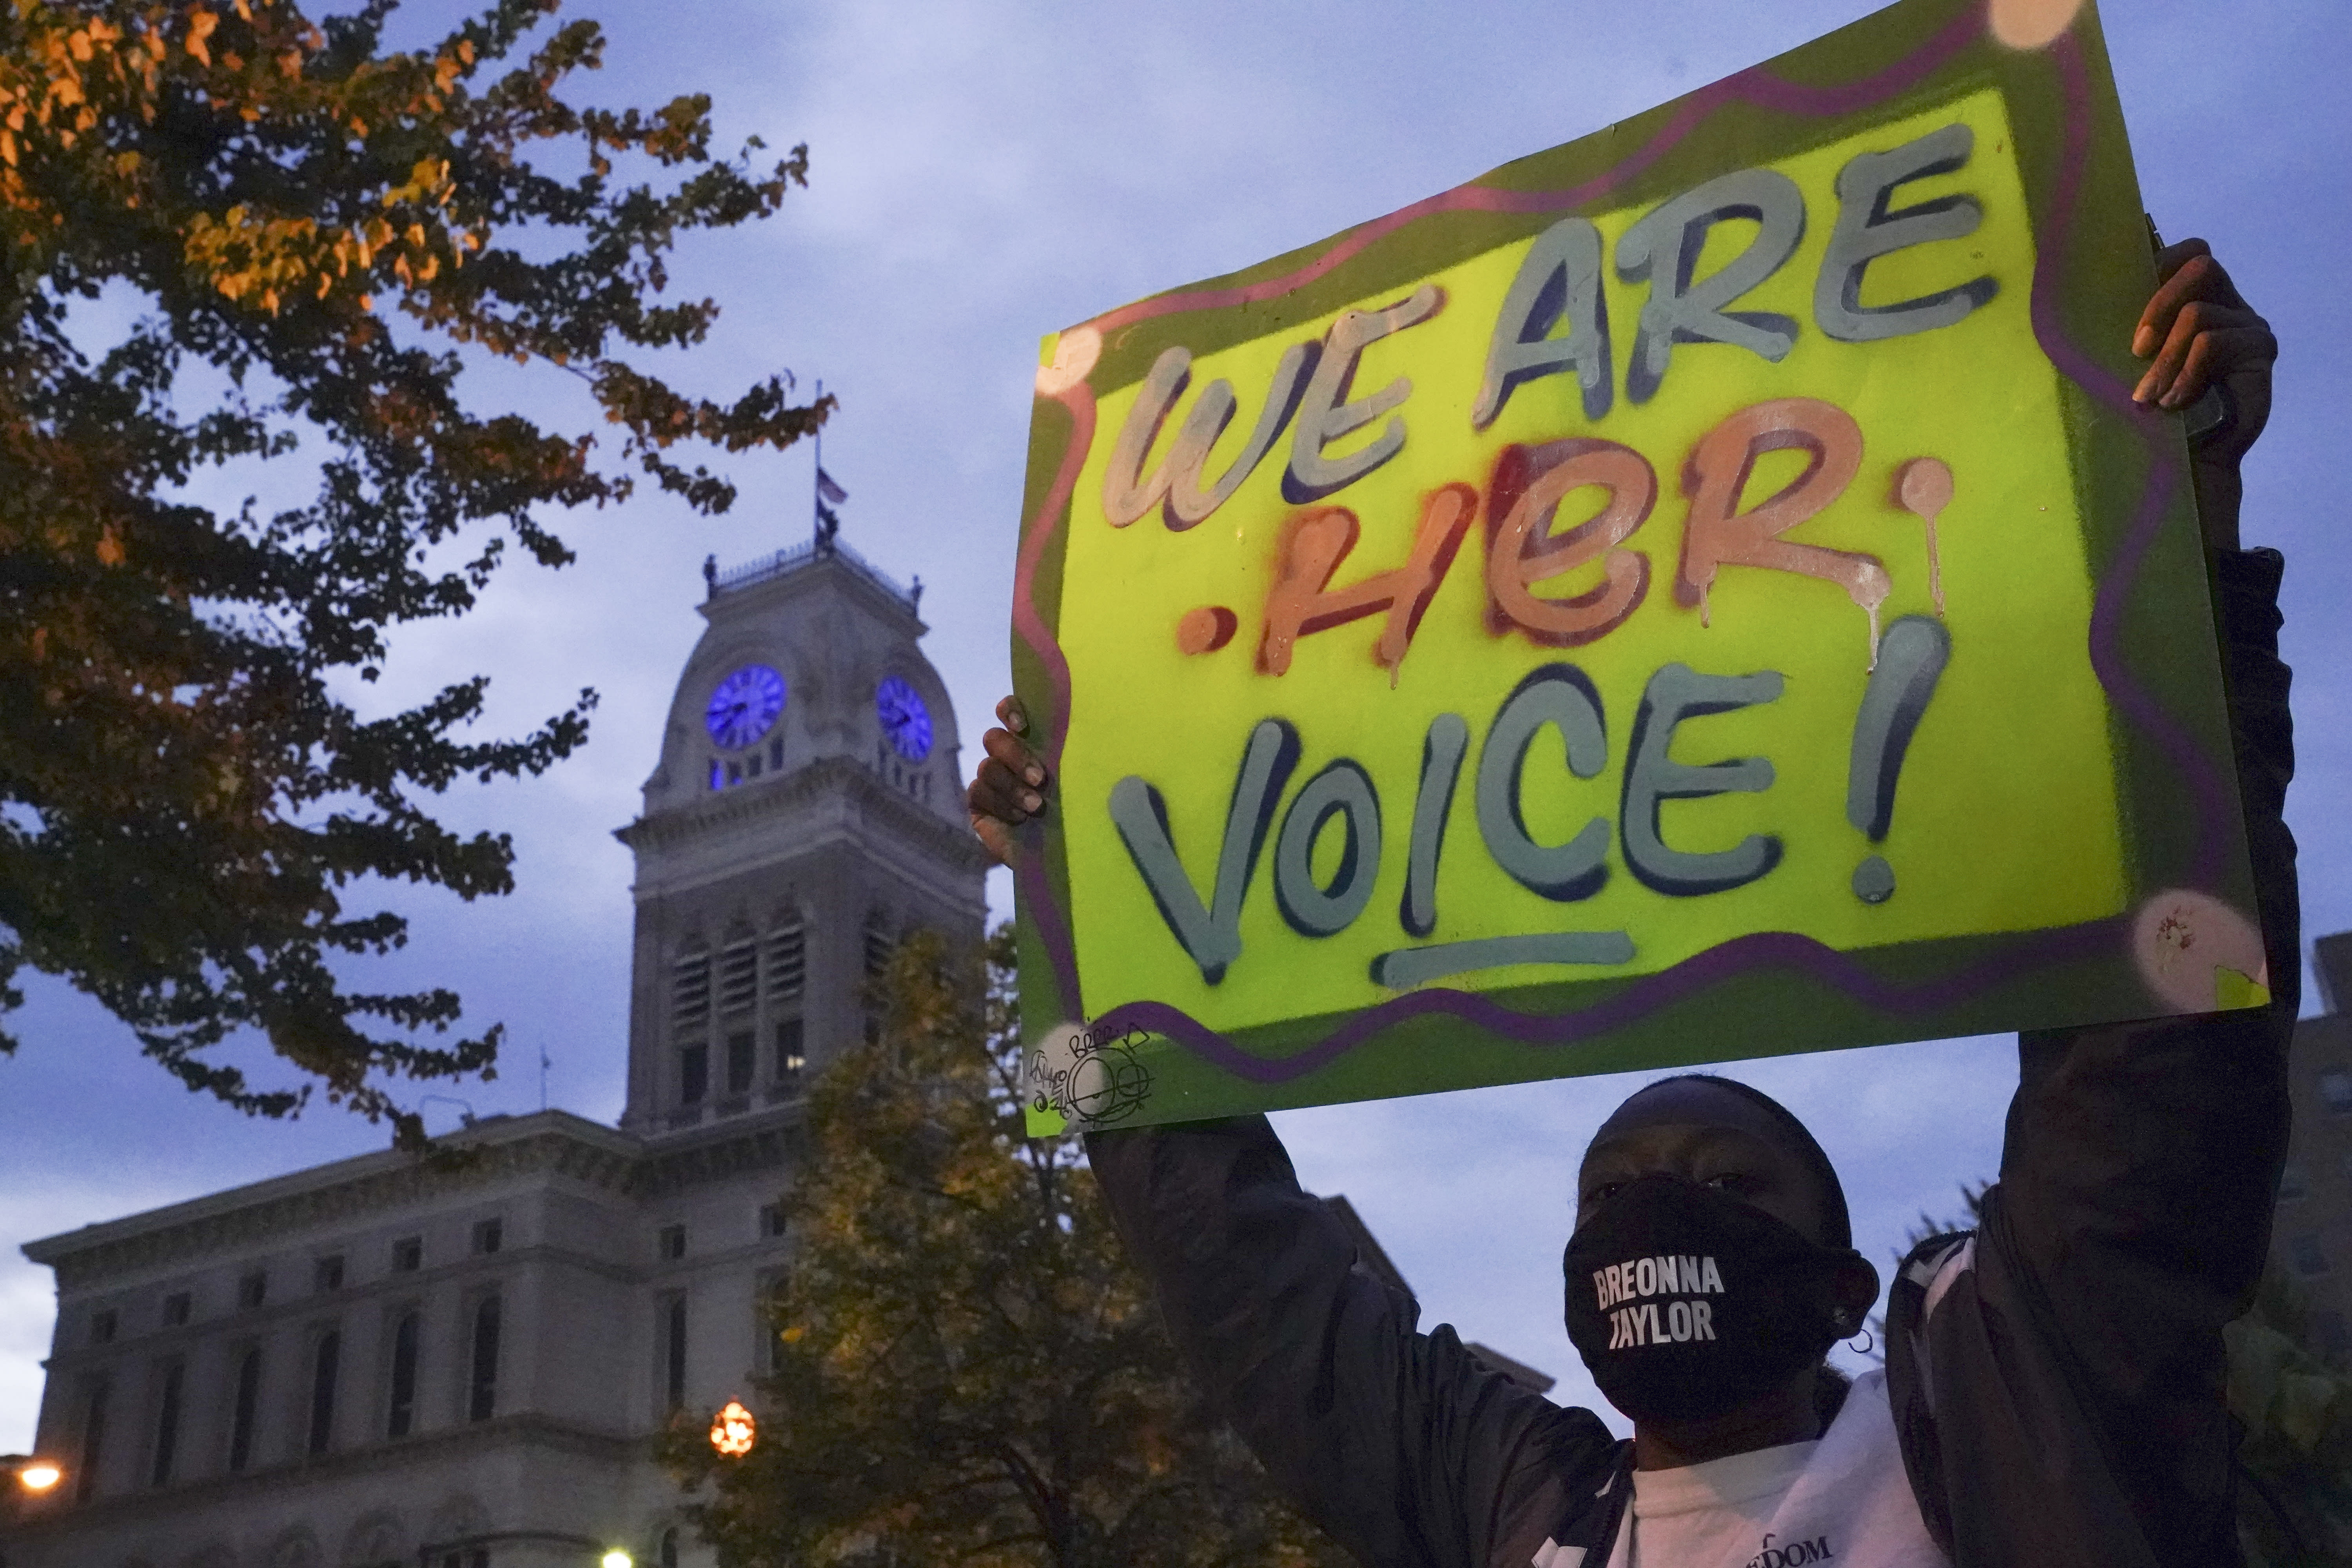 A protester stands in Jefferson Square, Thursday, Sept. 24, 2020, in Louisville, Ky. Authorities pleaded for calm while activists vowed to fight on Thursday in Kentucky's largest city, where a gunman wounded two police officers during anguished protests following the decision not to charge officers for killing Breonna Taylor. (AP Photo/John Minchillo)